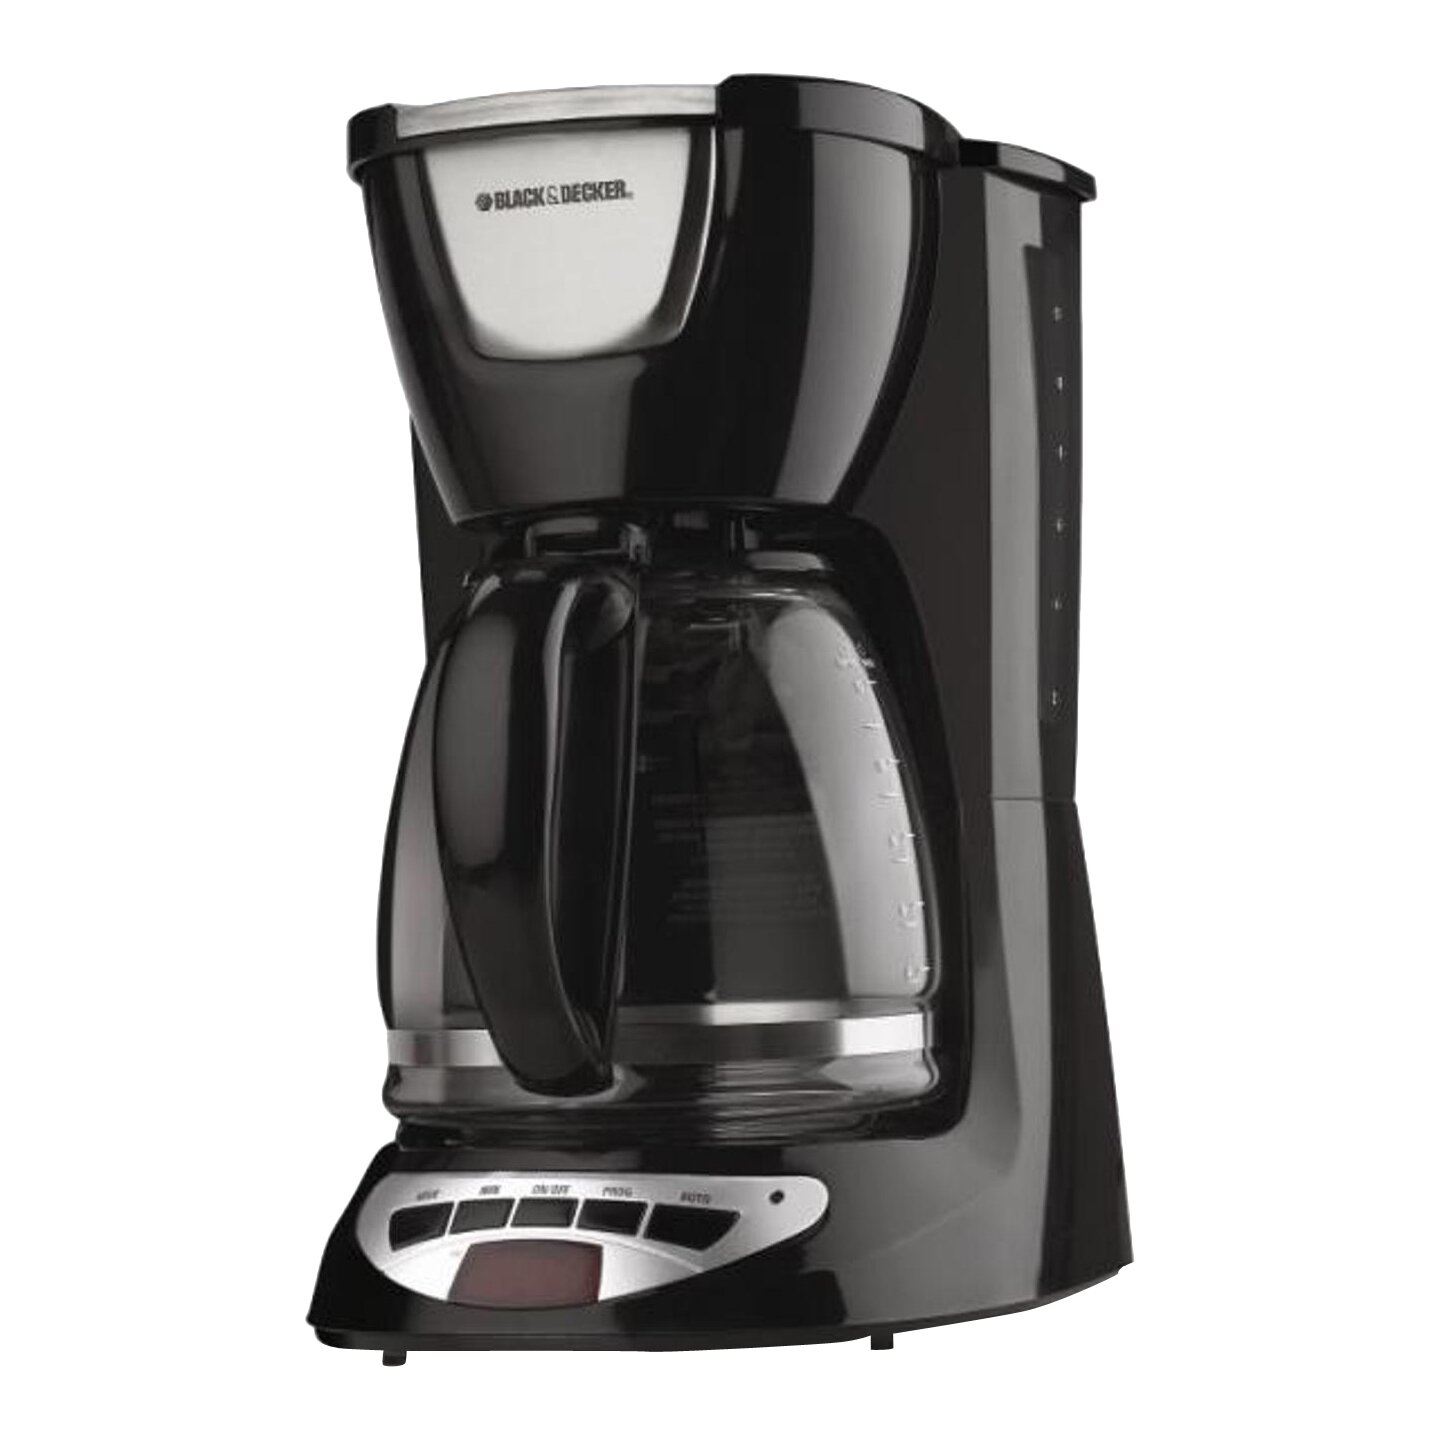 Black and decker 12 cup programmable - Black Amp Decker 12 Cup Programmable Coffee Maker